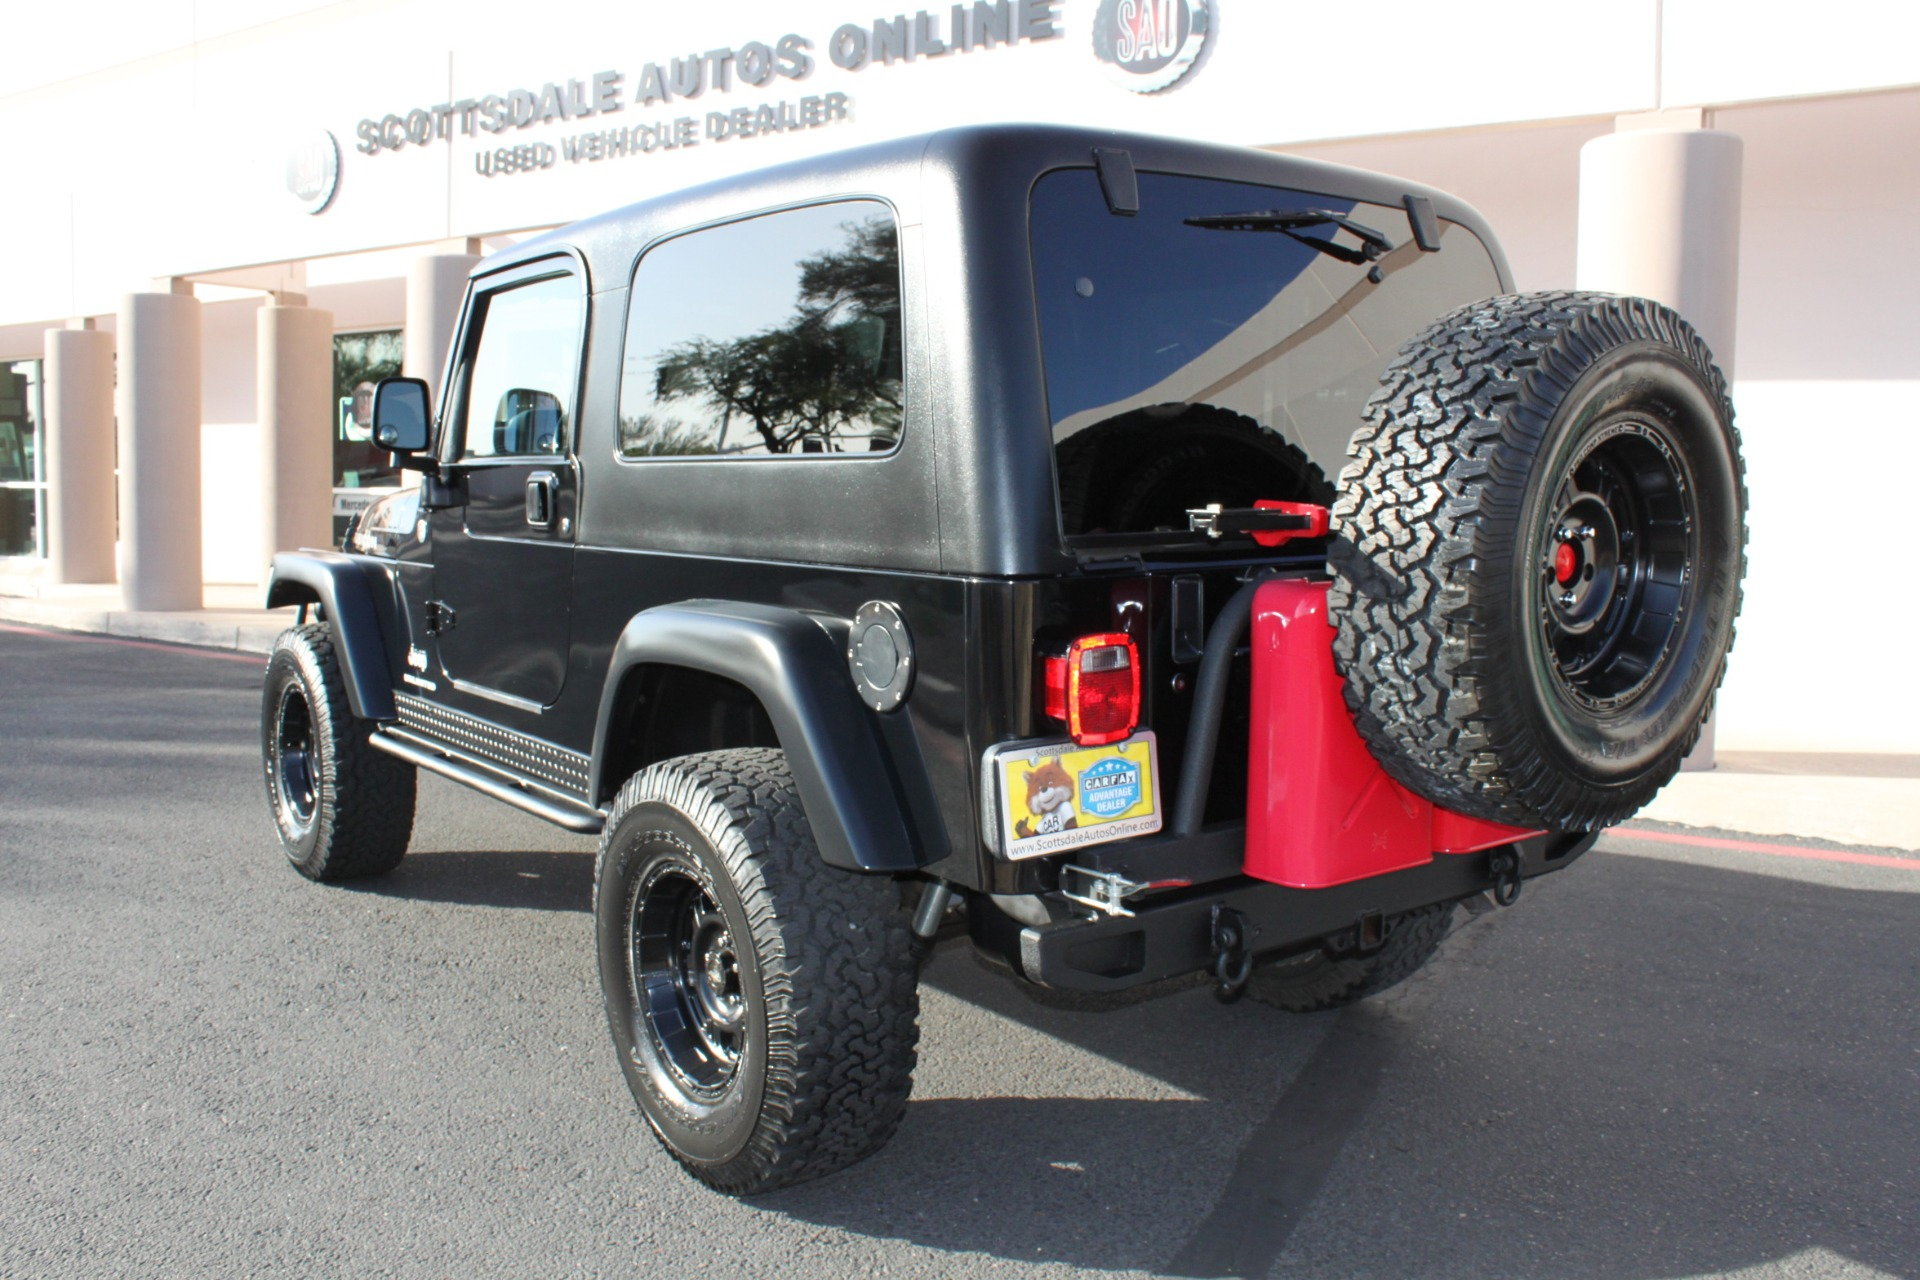 Used-2006-Jeep-Wrangler-Unlimited-Rubicon-LWB-Grand-Wagoneer